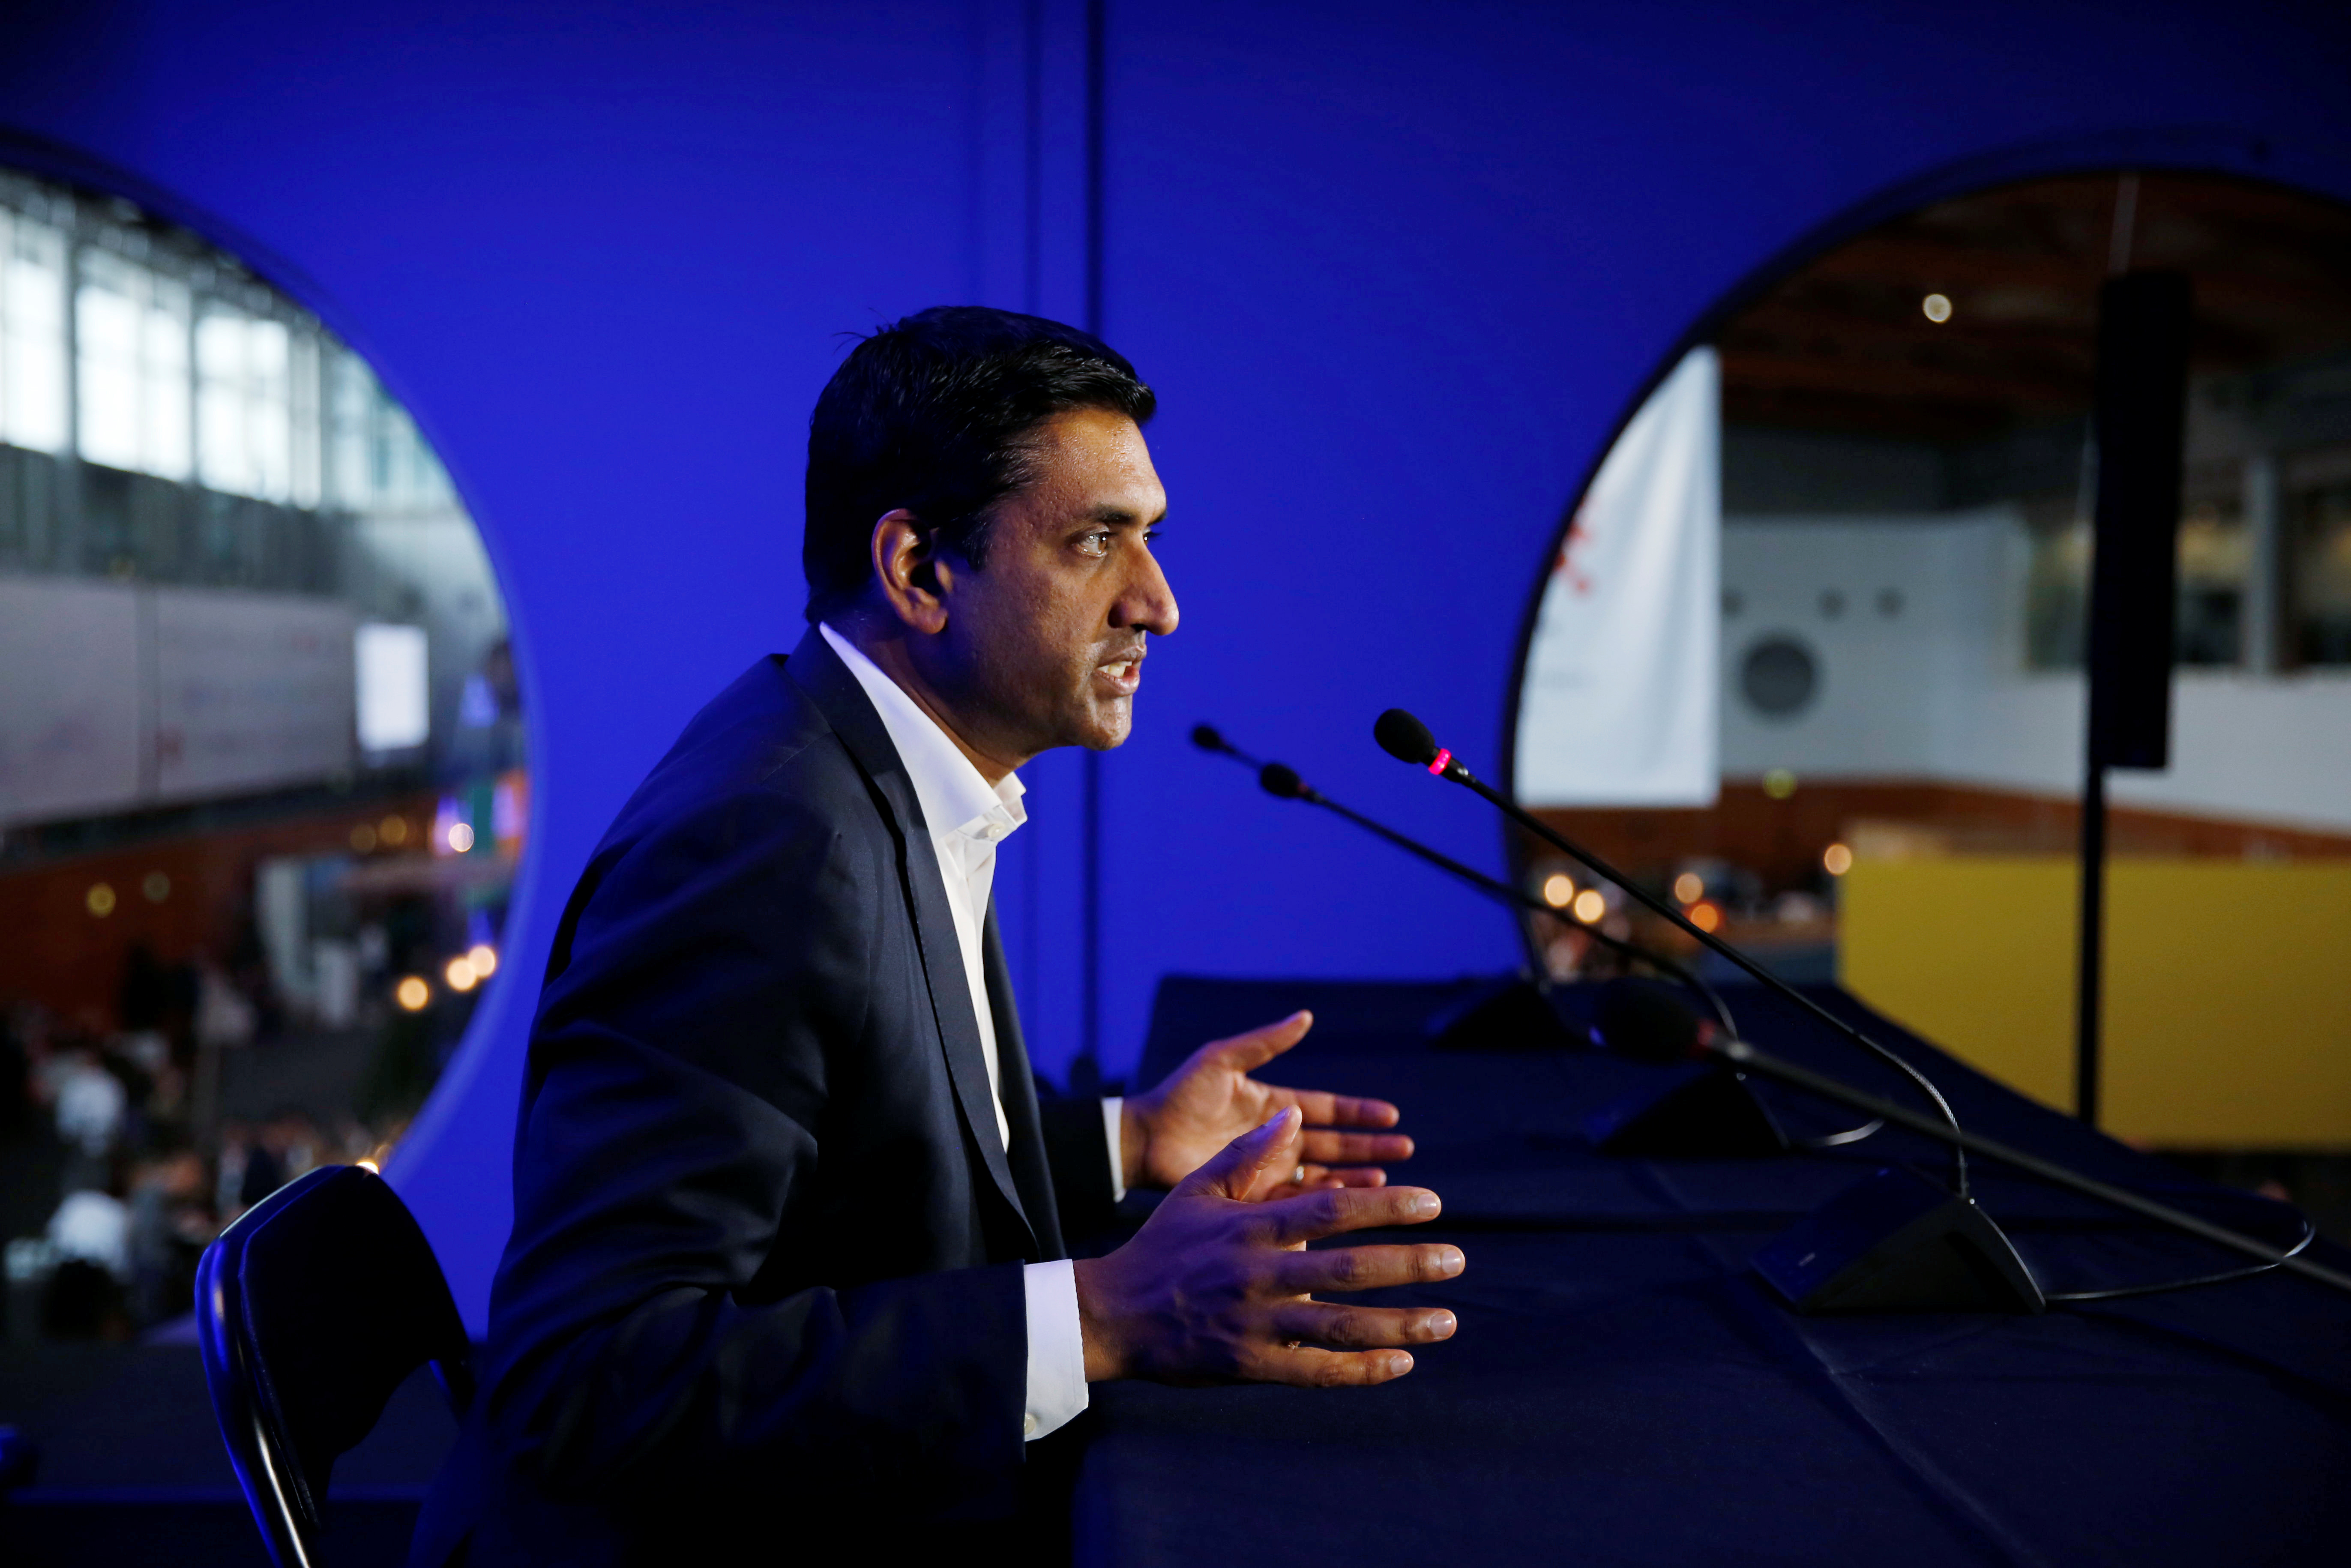 US Democratic Representative Ro Khanna, vice chair of the 98-member Congressional Progressive Caucus, holds a news conference during Web Summit, in Lisbon, Portugal, November 6, 2019. REUTERS/Pedro Nunes